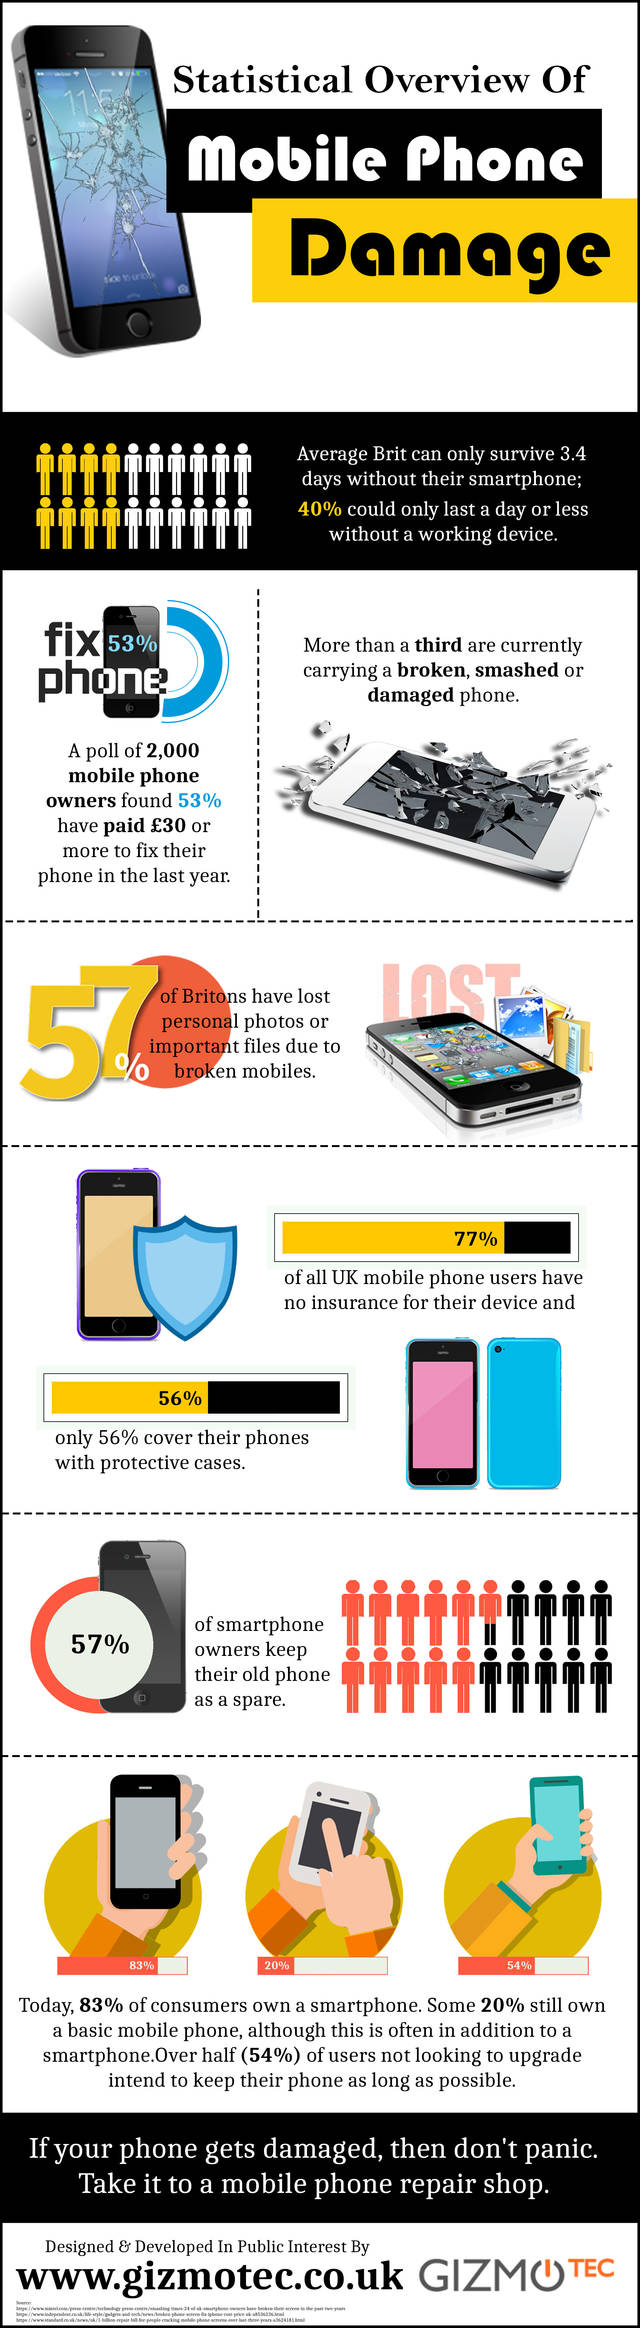 Statistical Overview Of Mobile Phone Damage